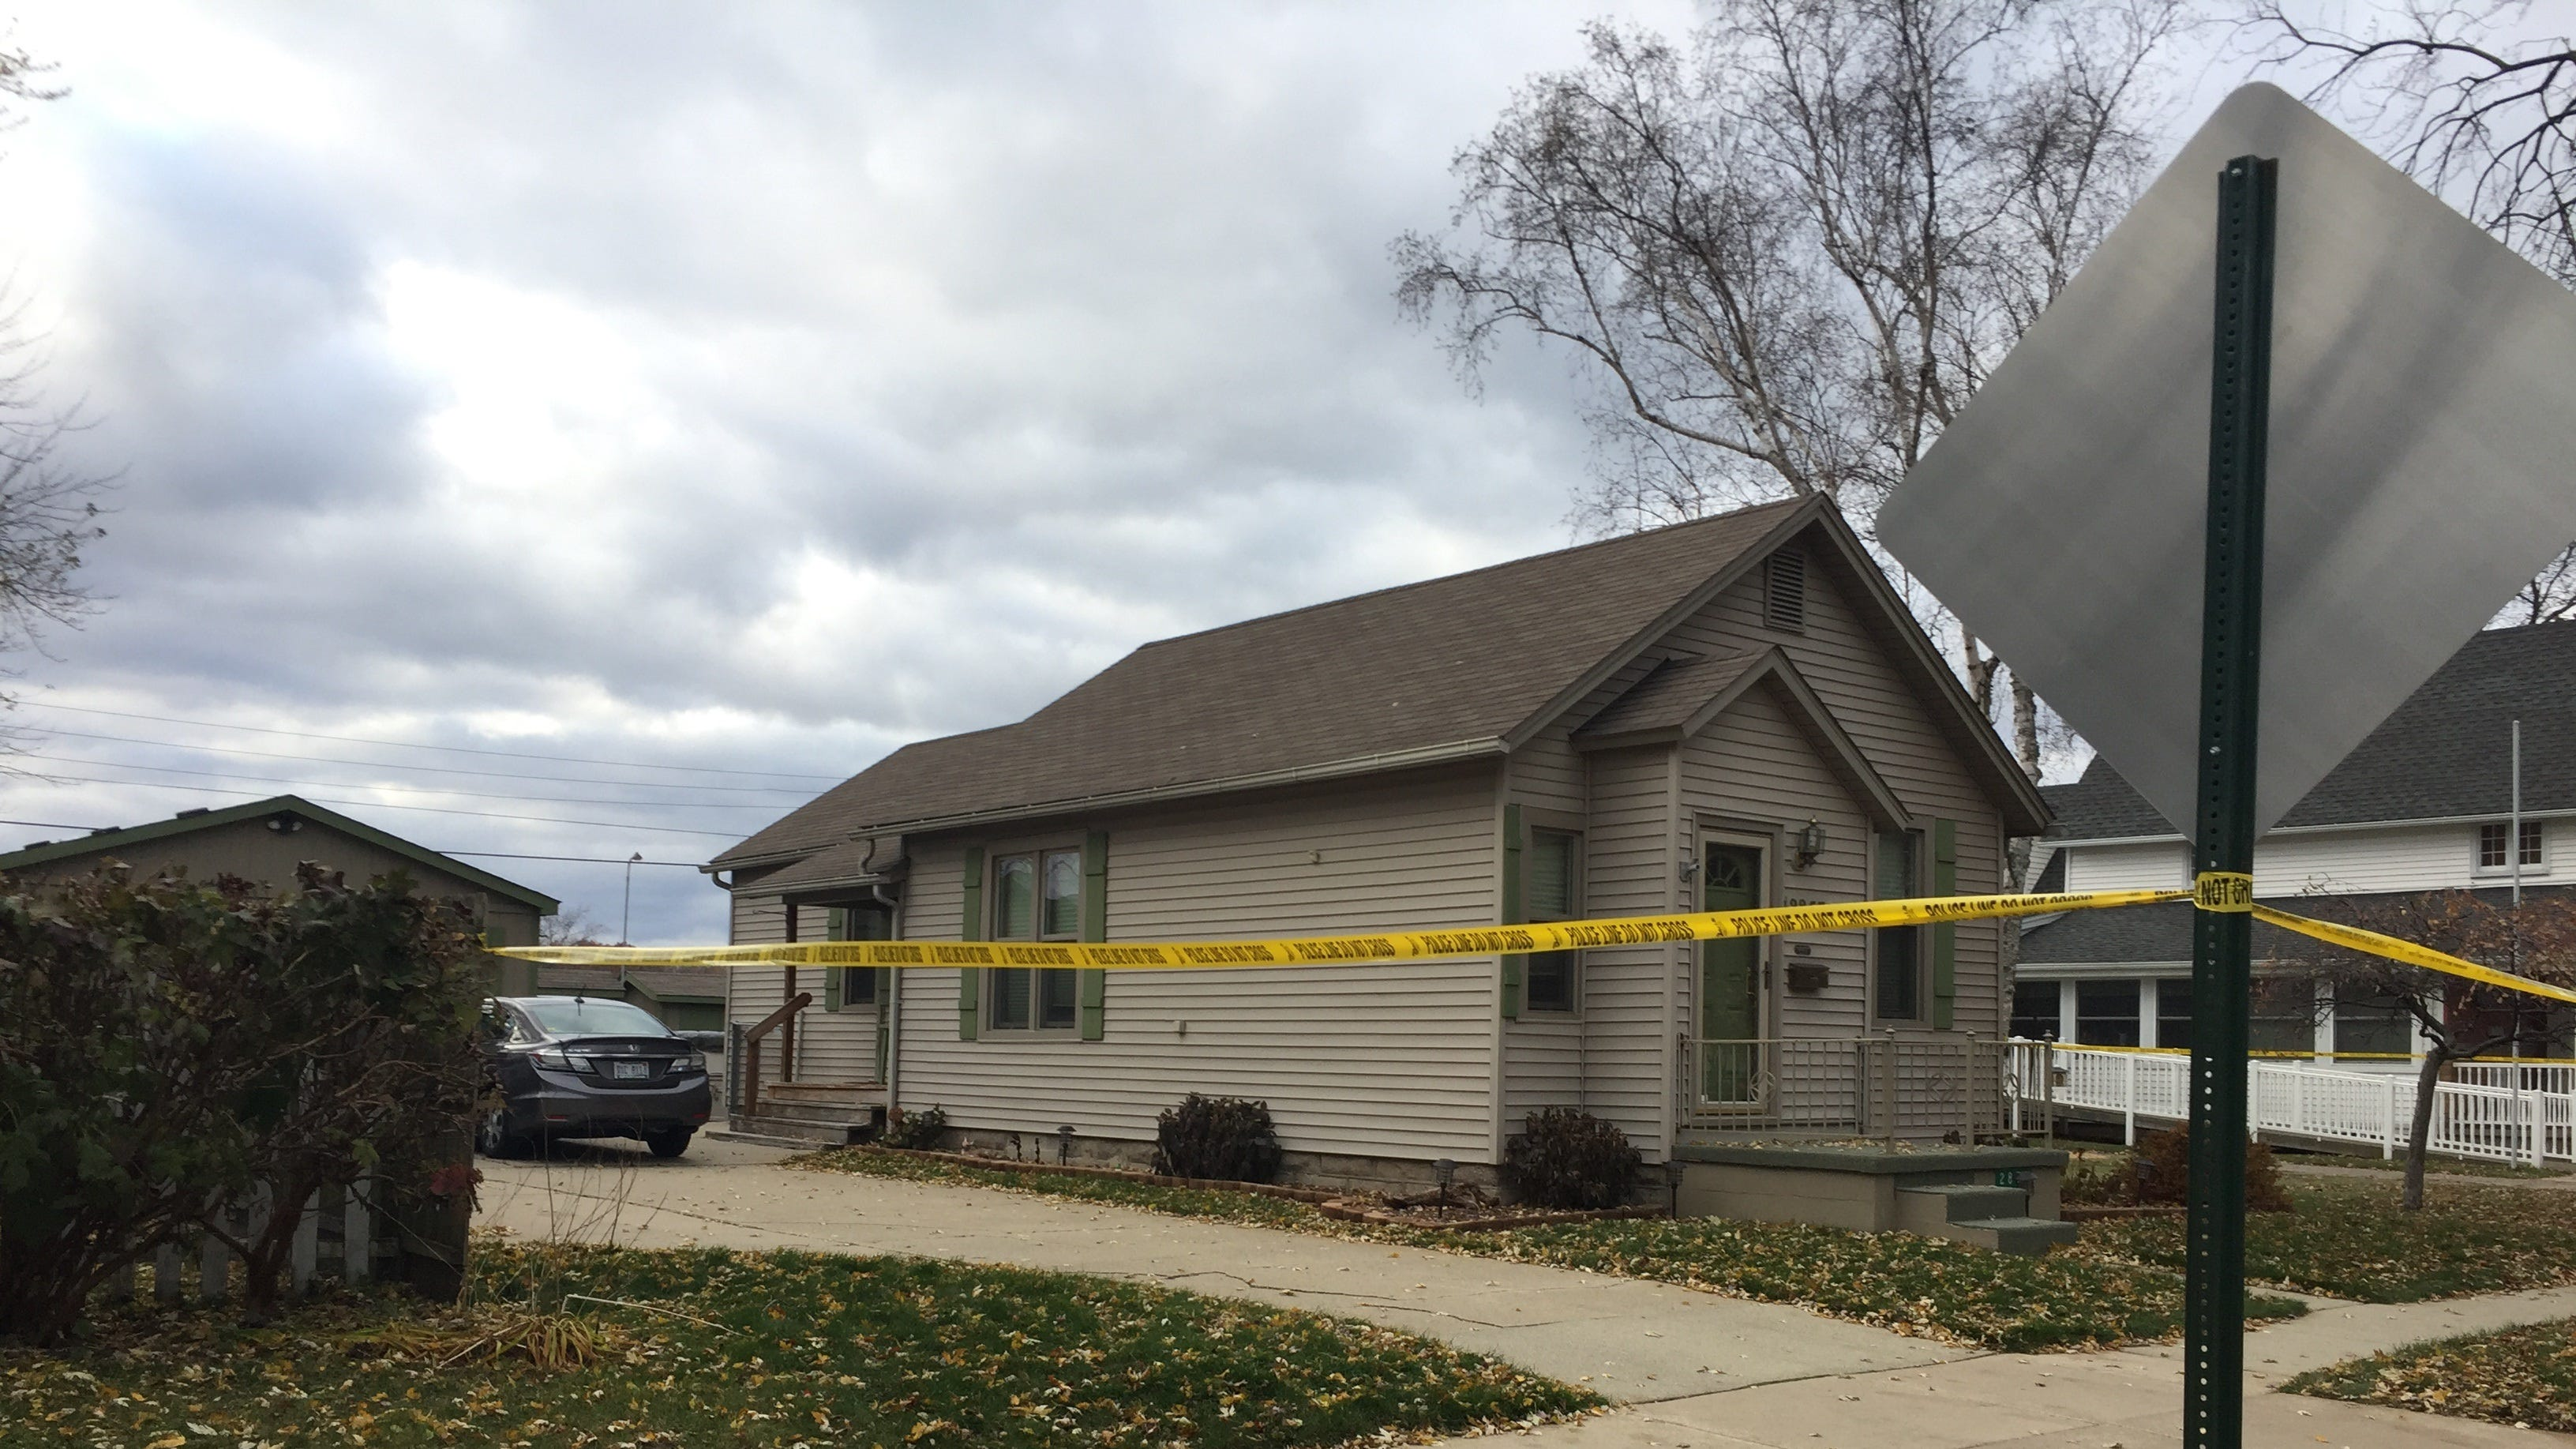 Evidence tape restricts access to a home on Stone Street in Port Huron where a mother and daughter were found dead.